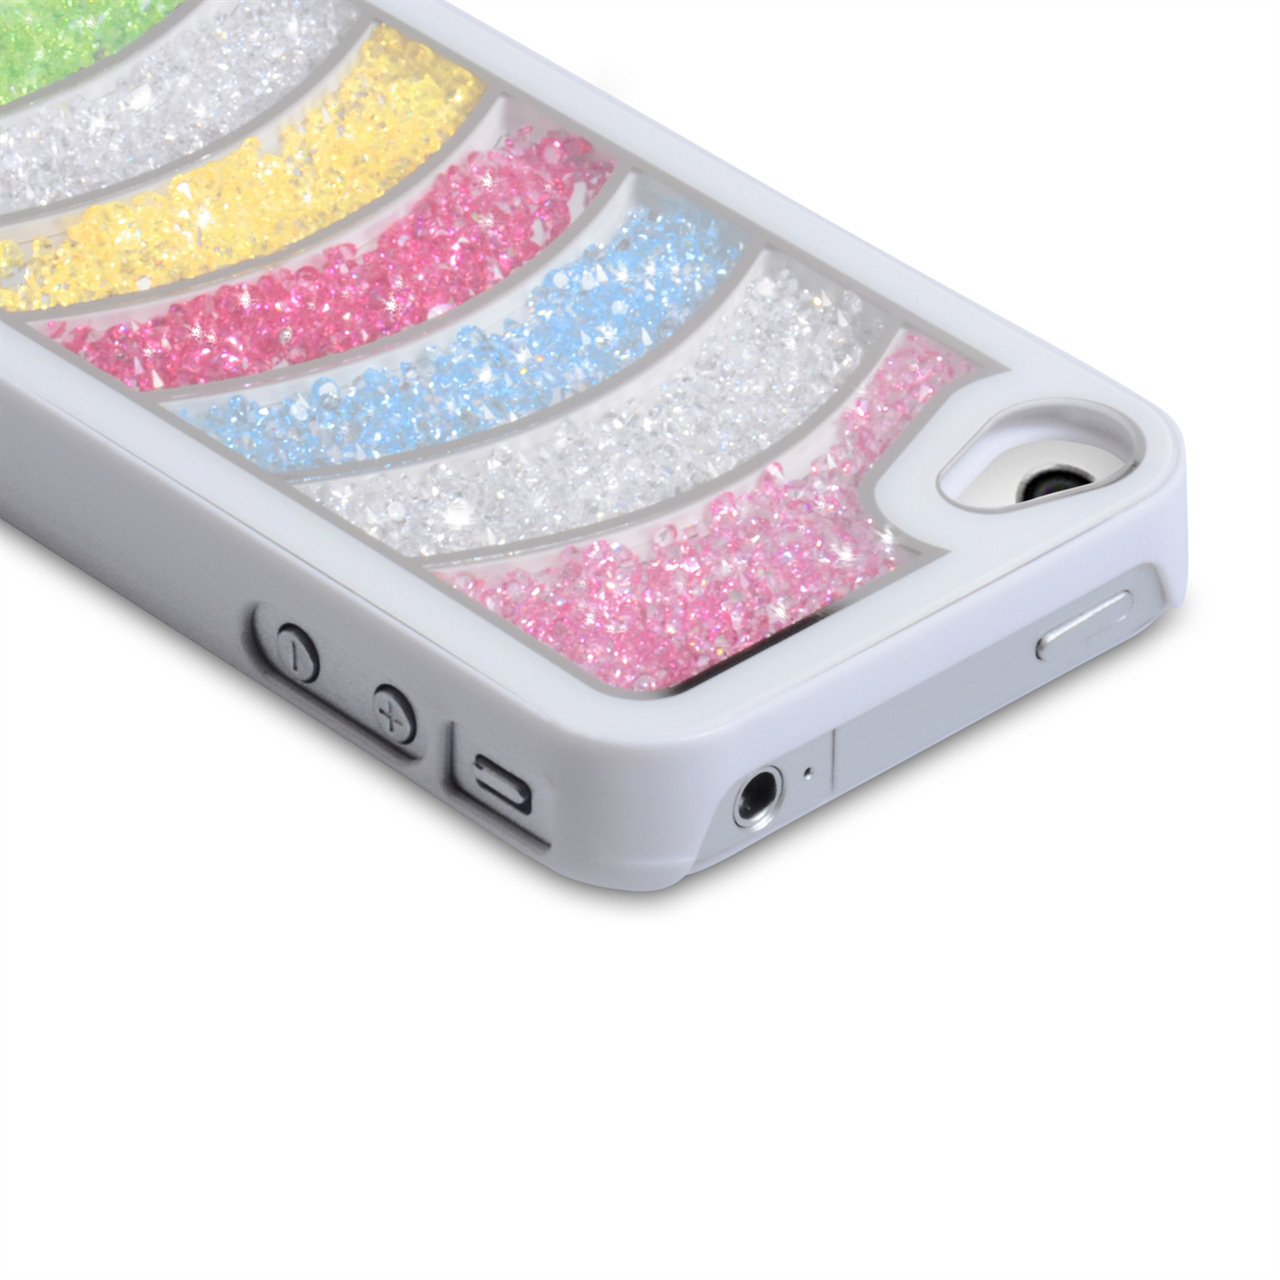 YouSave Accessories iPhone 4 / 4S Rainbow Bling Hard Case - White